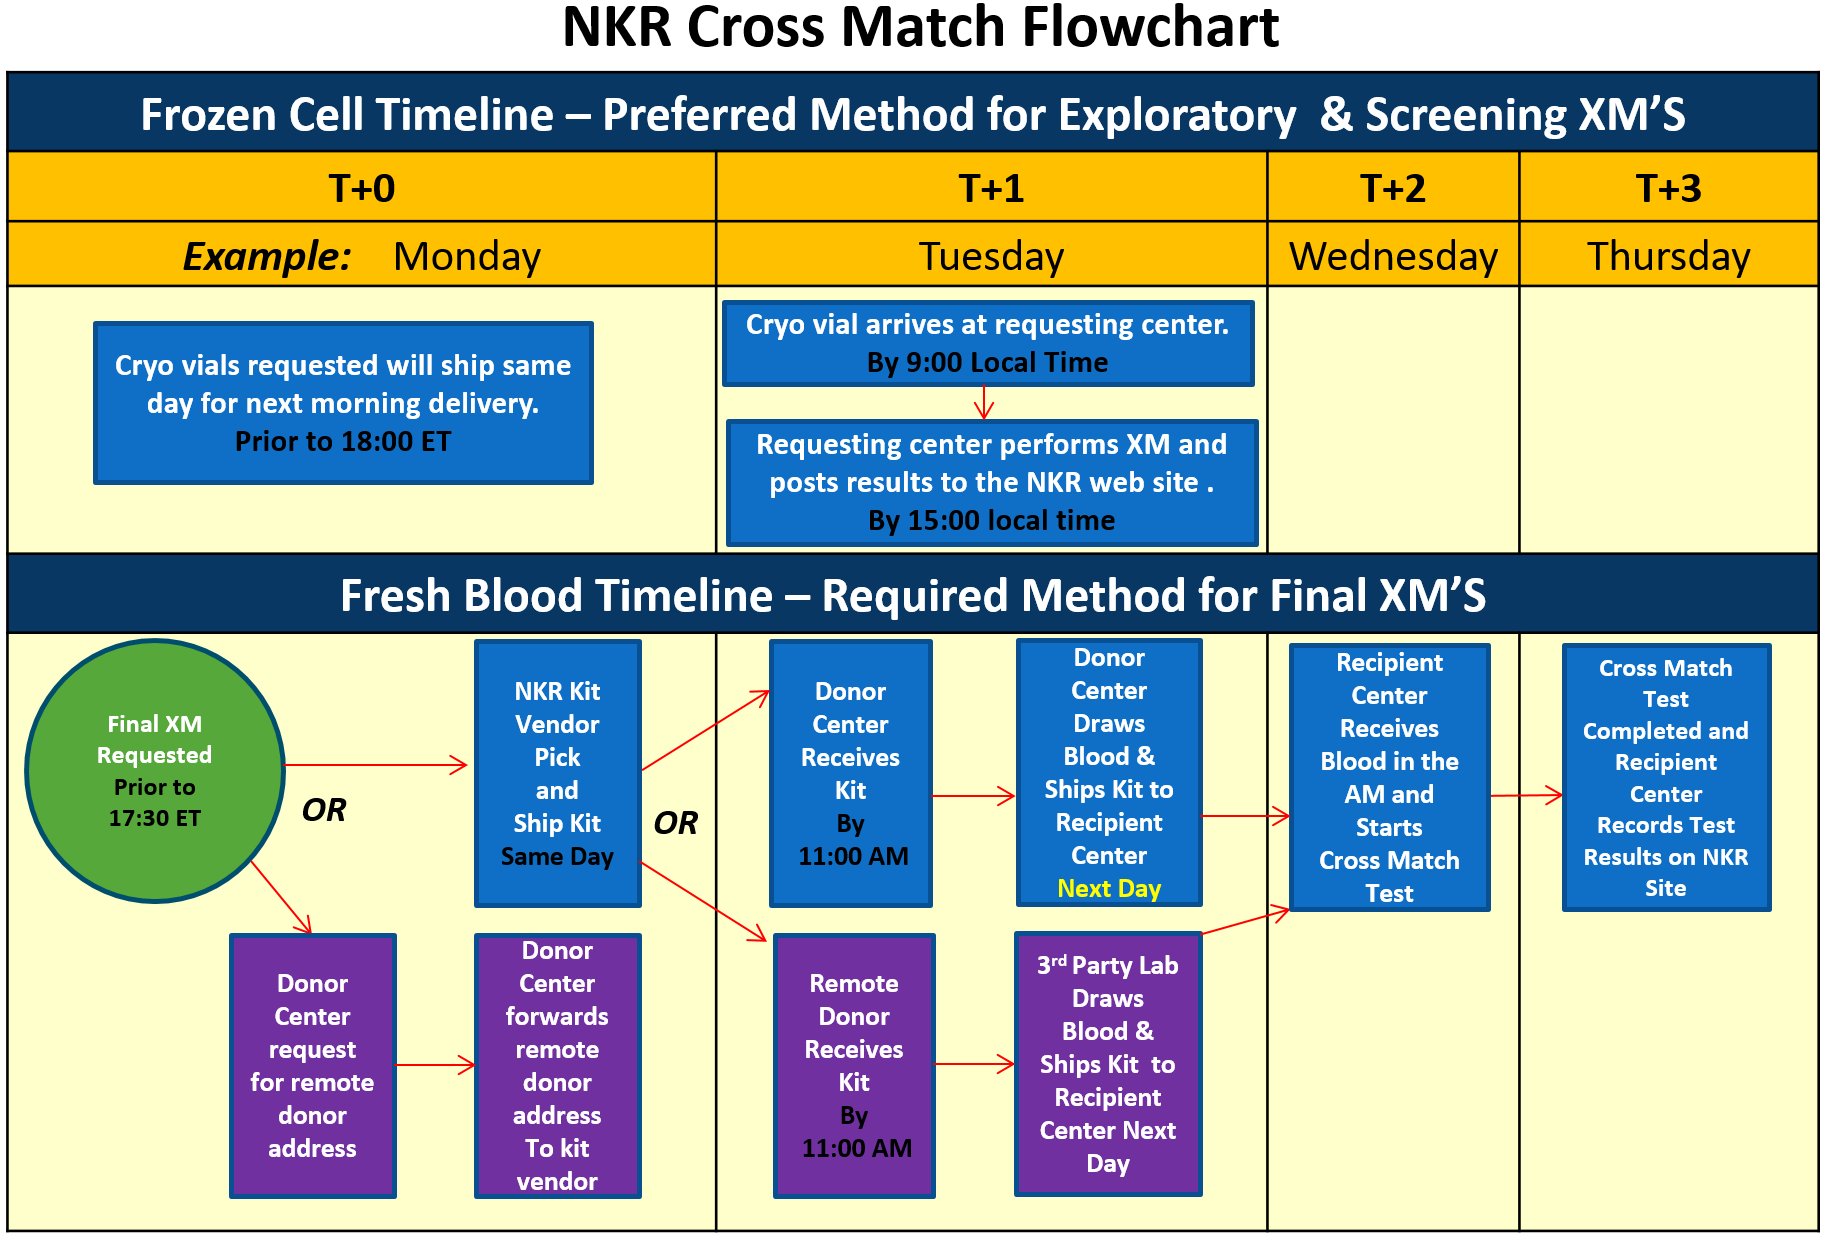 Transplant centers national kidney registry facilitating when using cryo for a screening crossmatch additional nucs may be requested if needed to perform additional tests nvjuhfo Image collections